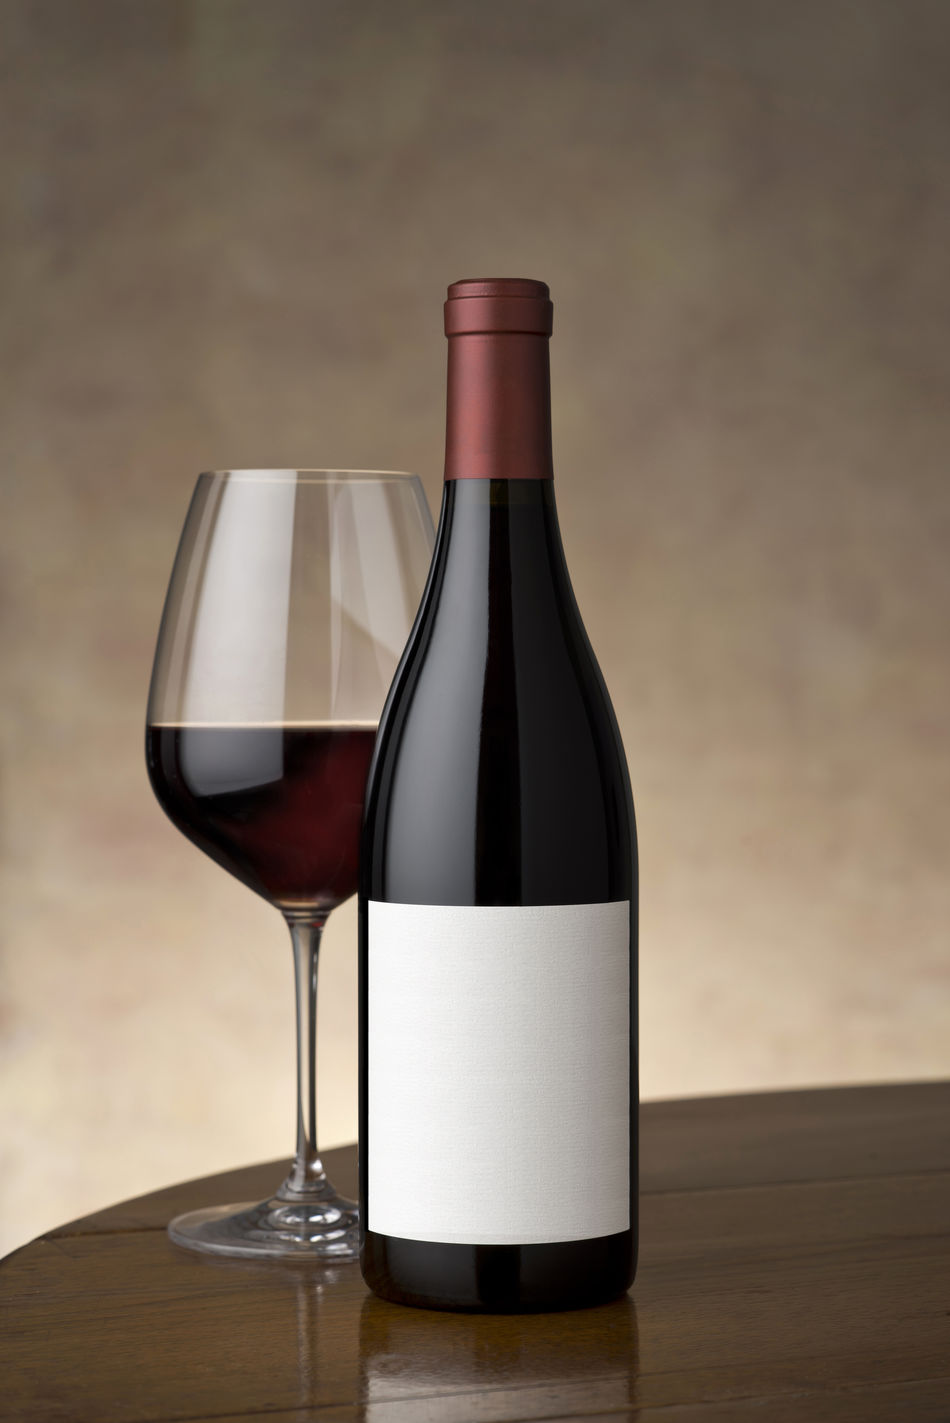 Add Text Alcohol Beveragephotography Blank Label Cabernet Sauvignon Drinking Glass Elegant Food And Drink Label No People Red Wine Studio Shot Surface Table Vertical Composition Wine Wine Bottle Wineglass Winetasting